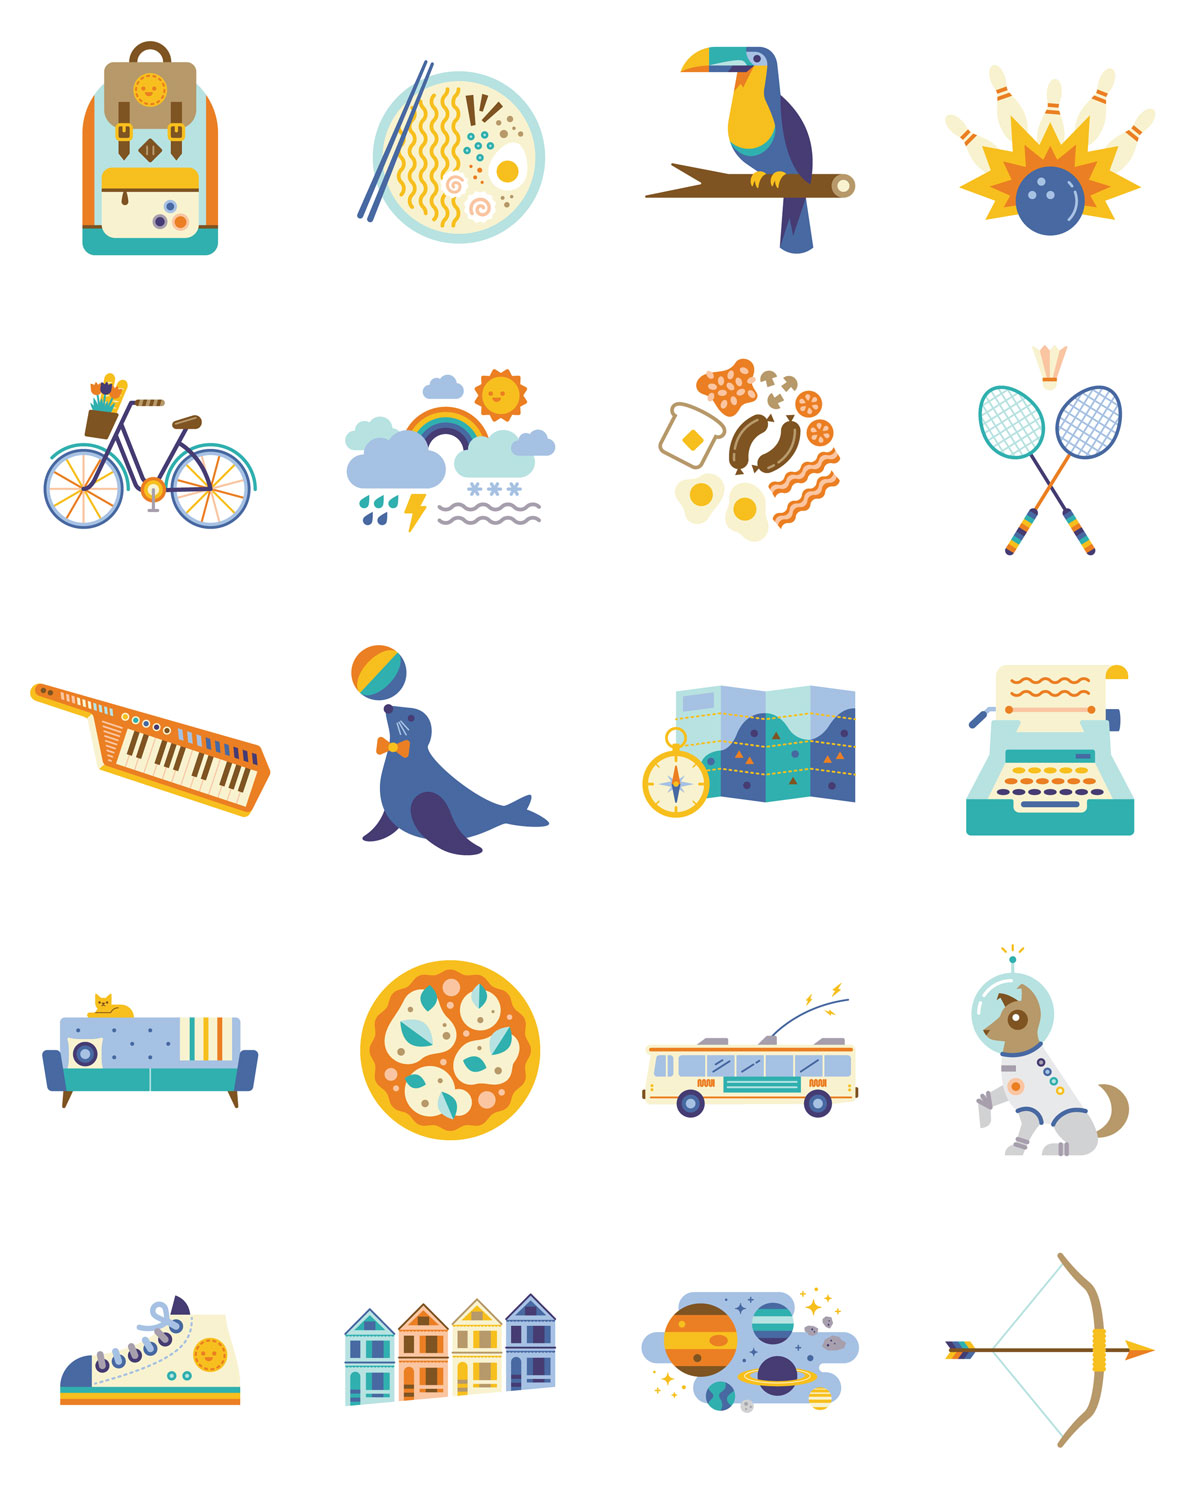 Airbnb brand concept illustrations by Helen Tseng